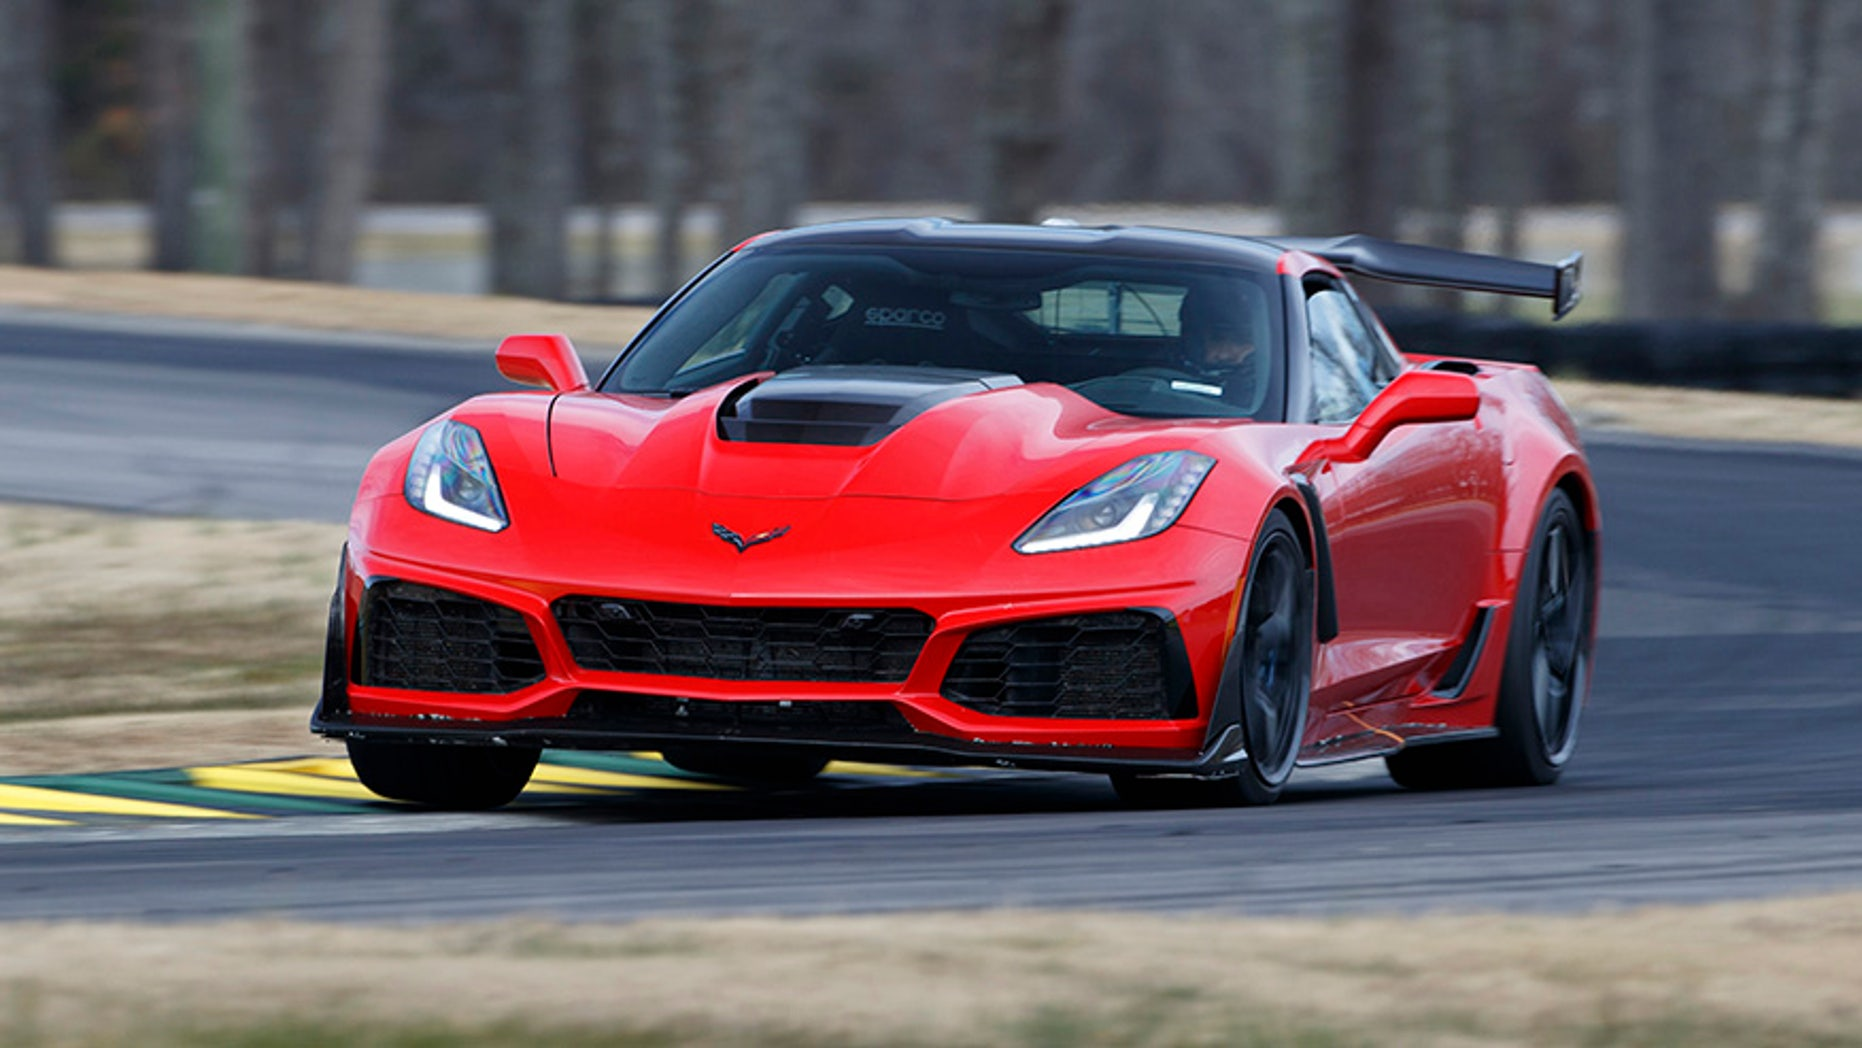 The 2019 Chevrolet Corvette Zr1 Just Embarrassed The Ford Gt Fox News